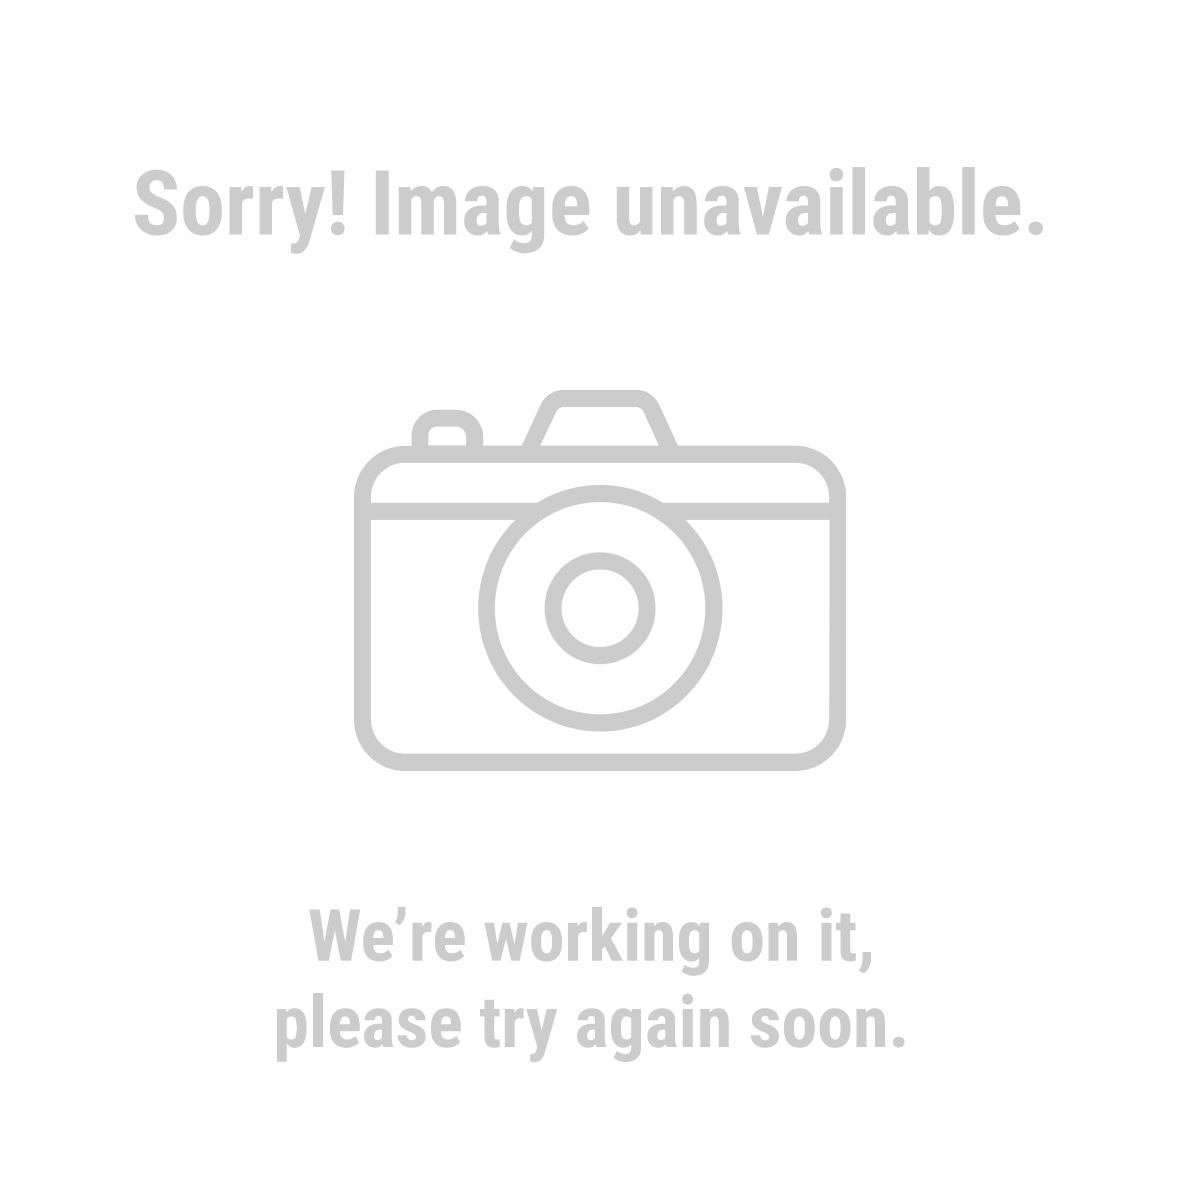 migmax™ 140 industrial welder with 120 volt input Equipment Trailer Wiring Diagram flux 125 welder